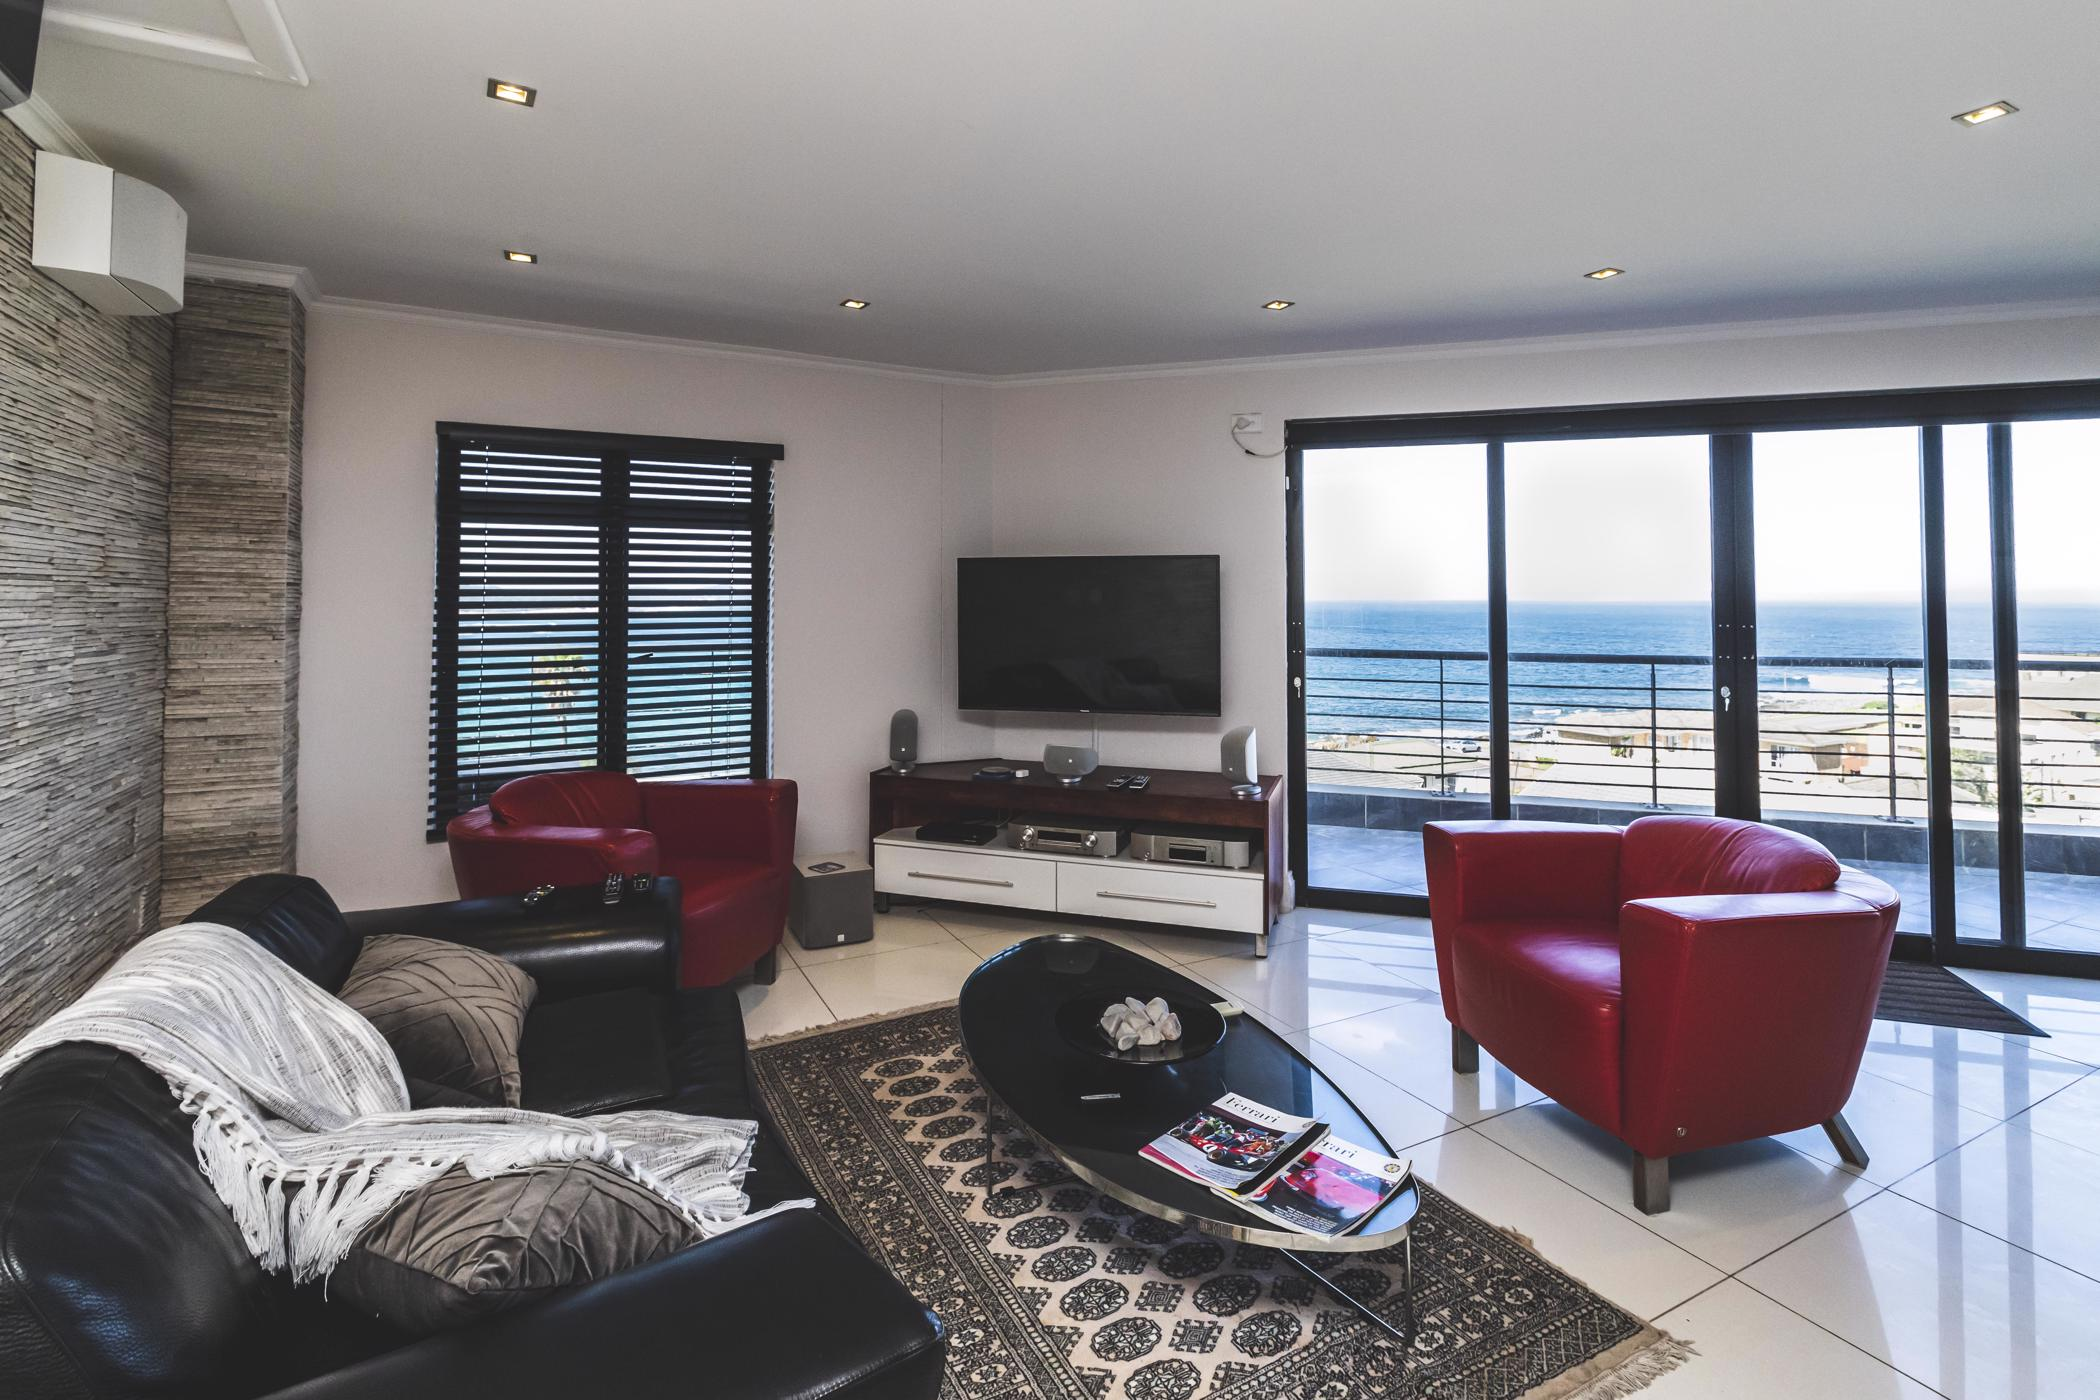 3 bedroom apartment for sale in Gonubie